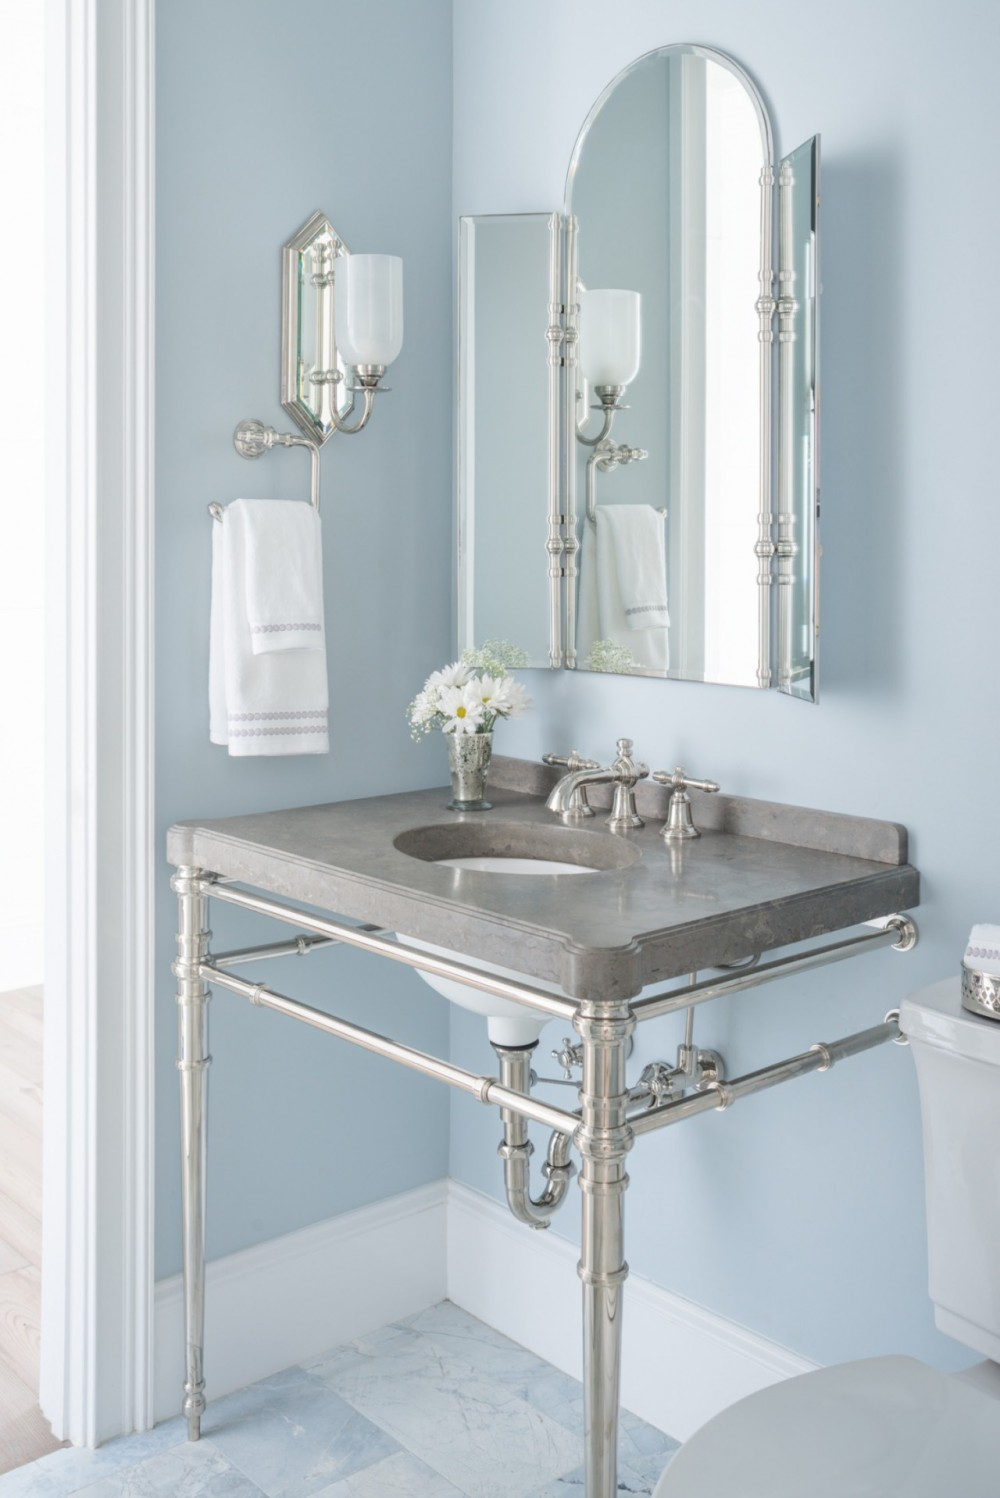 The powder room shows off a side of Southern style that's steeped in elegance and tradition.